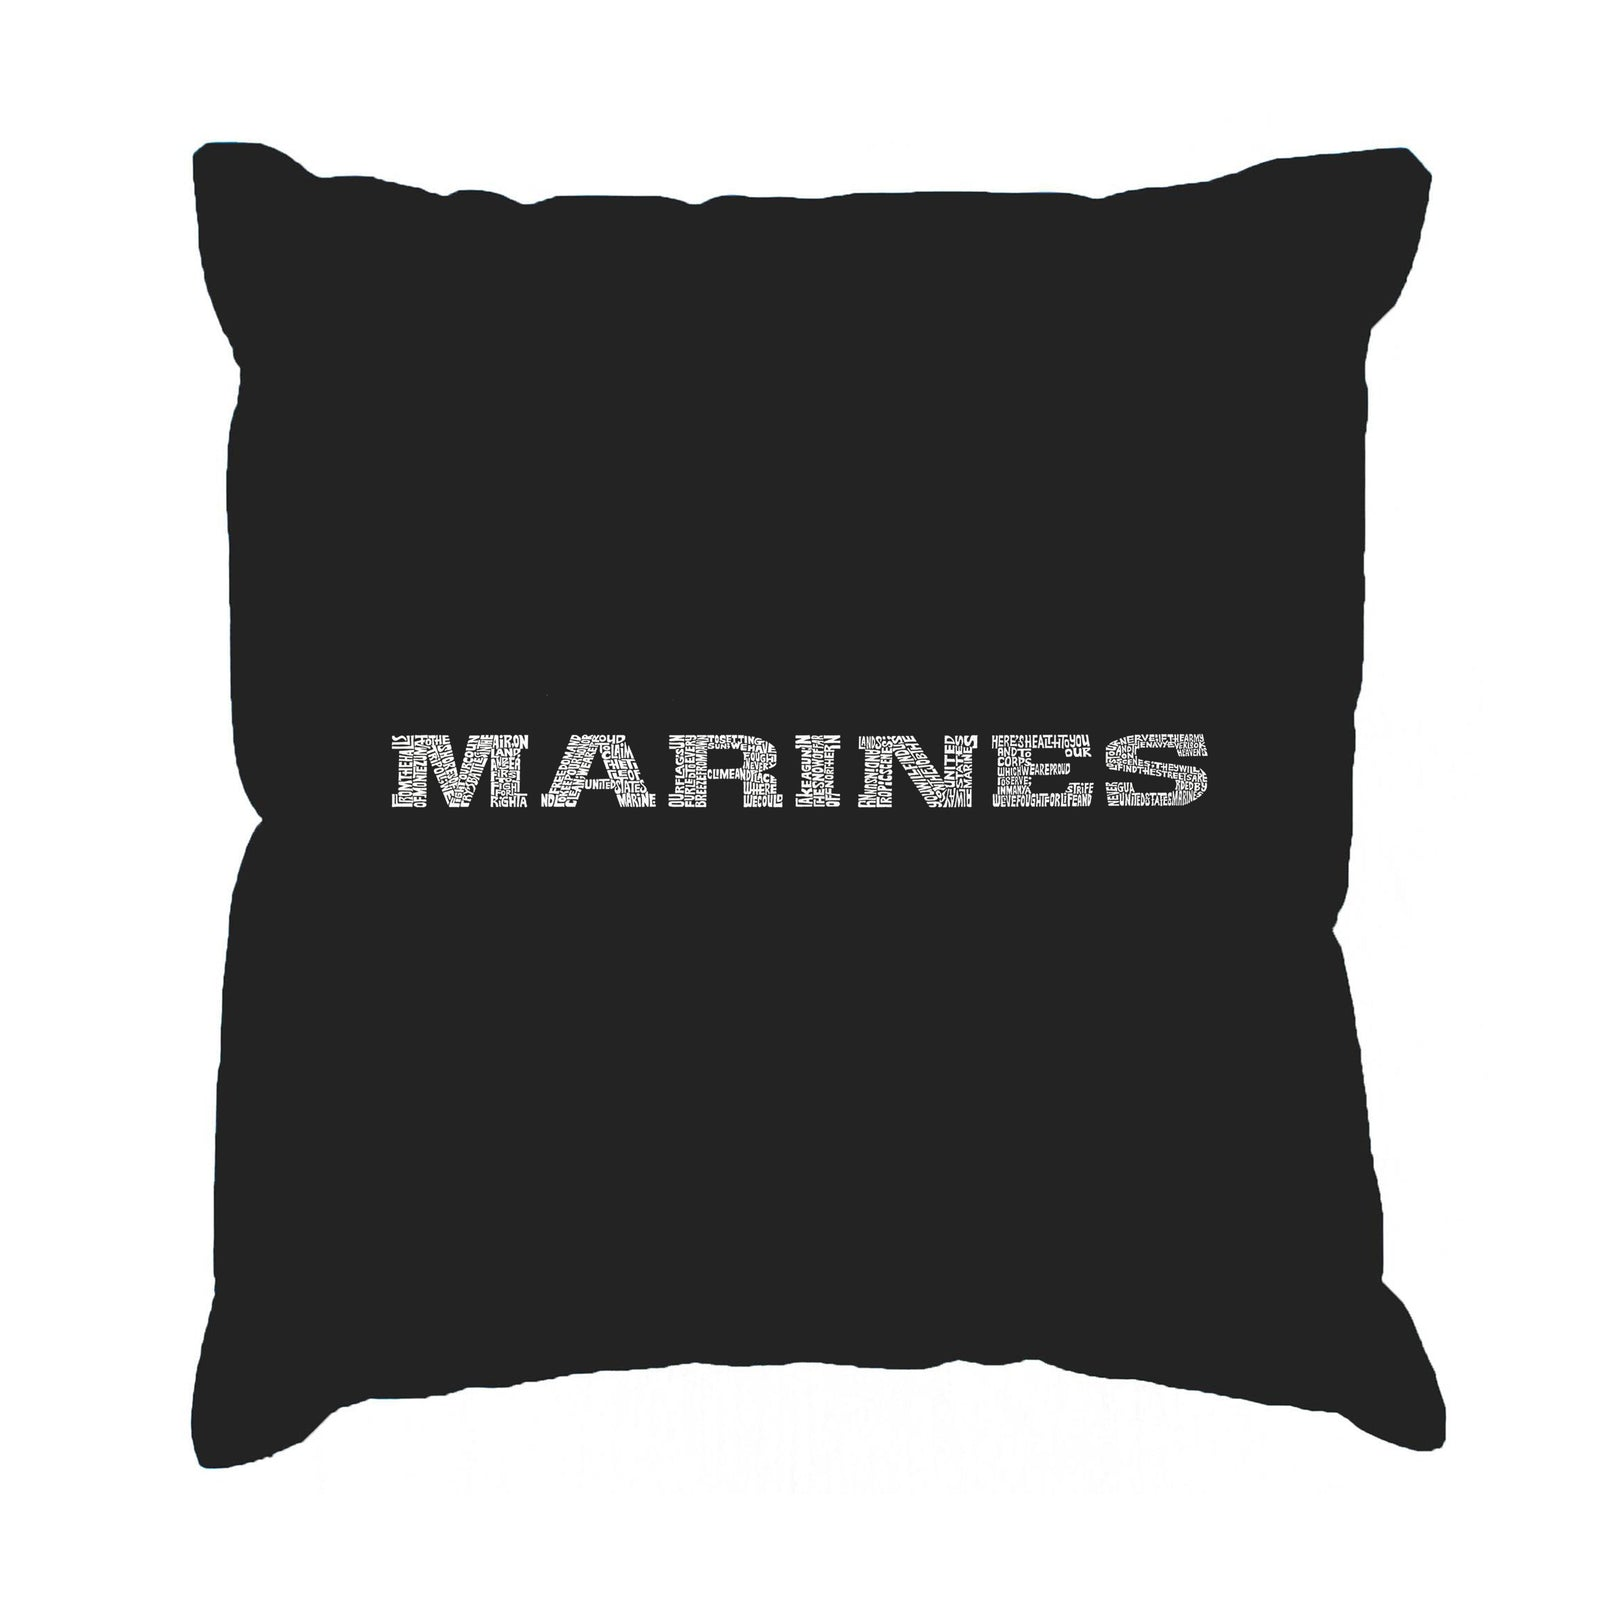 Throw Pillow Cover - LYRICS TO THE MARINES HYMN